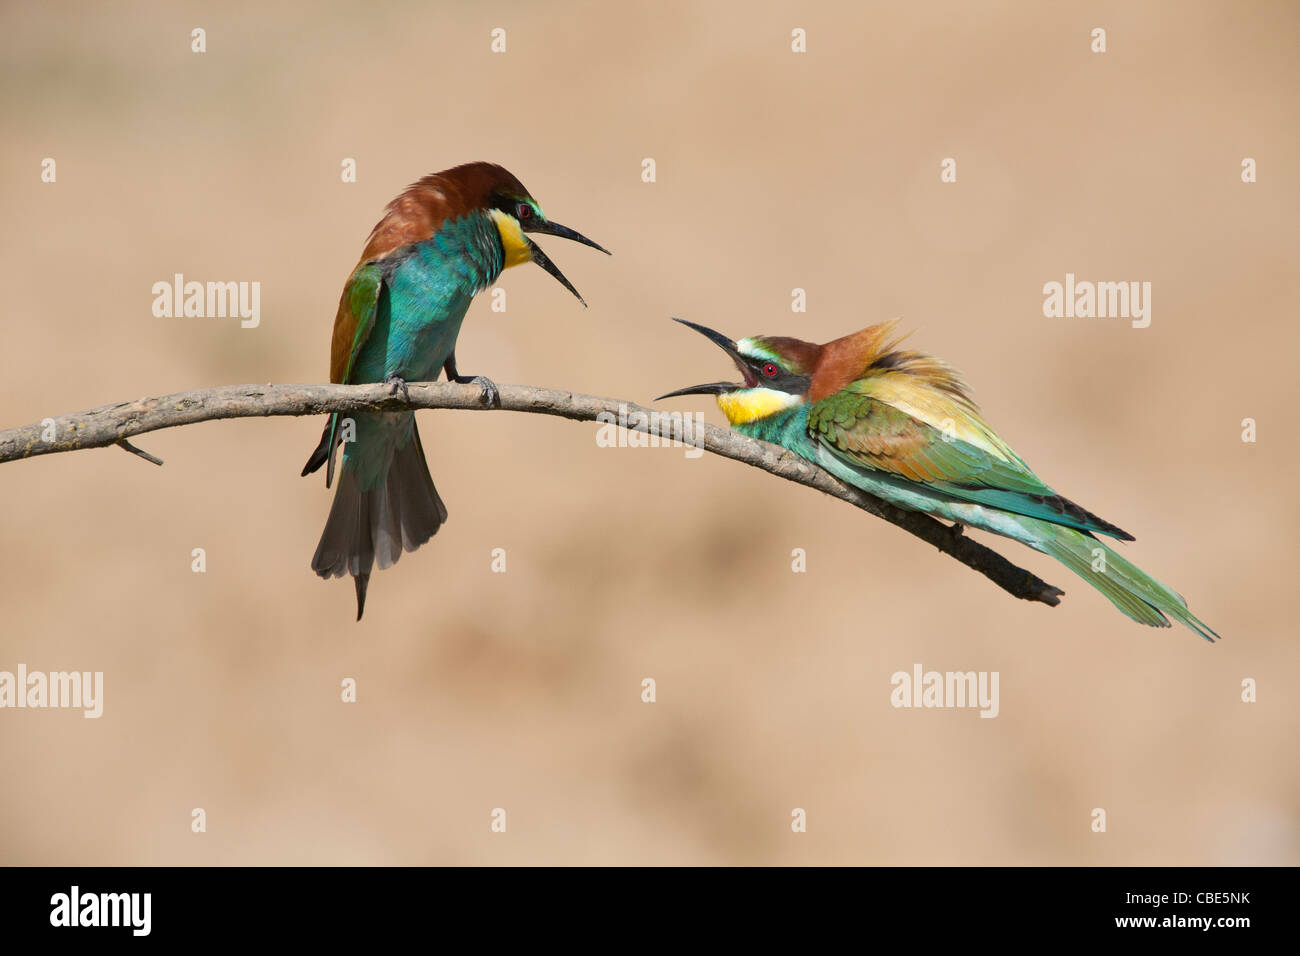 European Bee-eater (Merops apiaster), two perched on stick squabbling, Spain - Stock Image